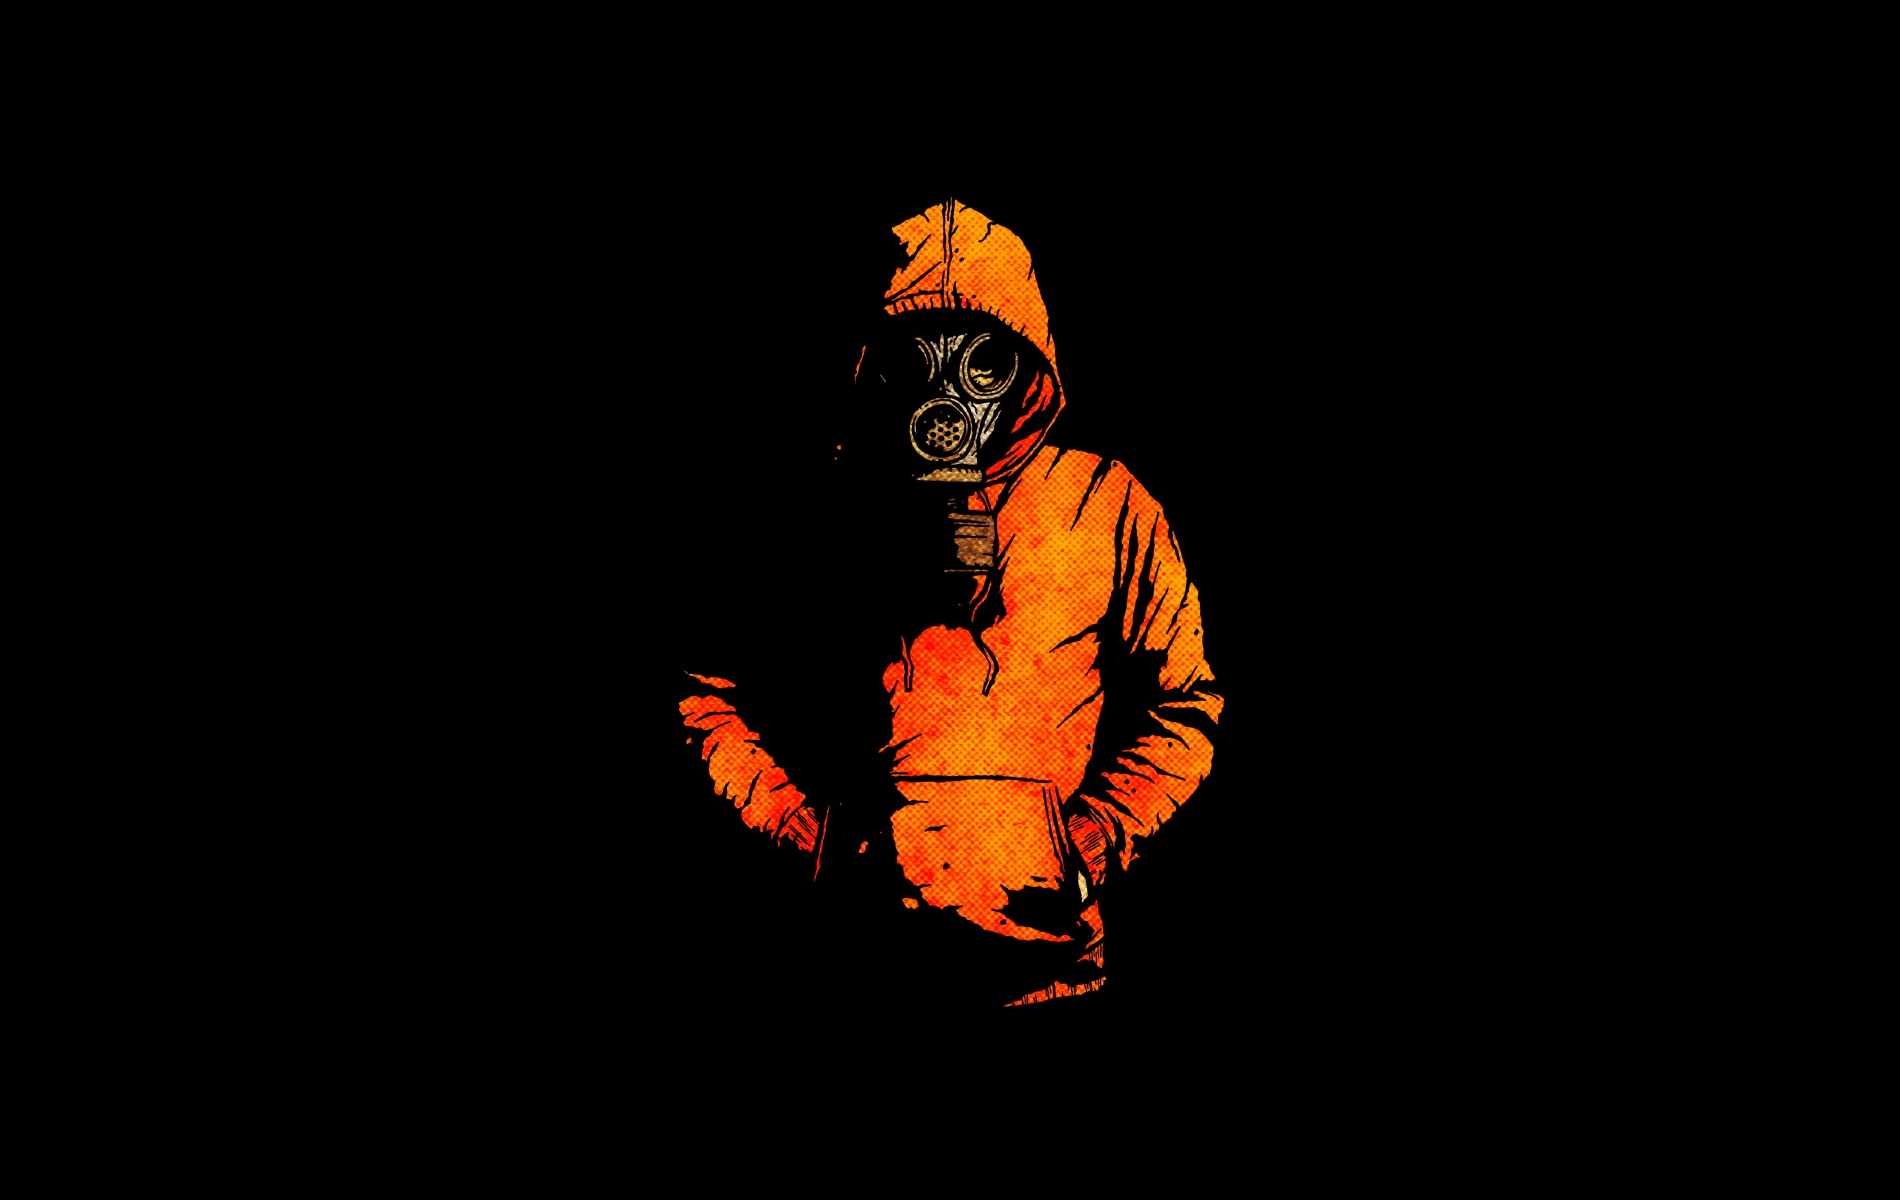 Gas Mask clipart skrillex Wallpapers Abyss Gas Mask 2